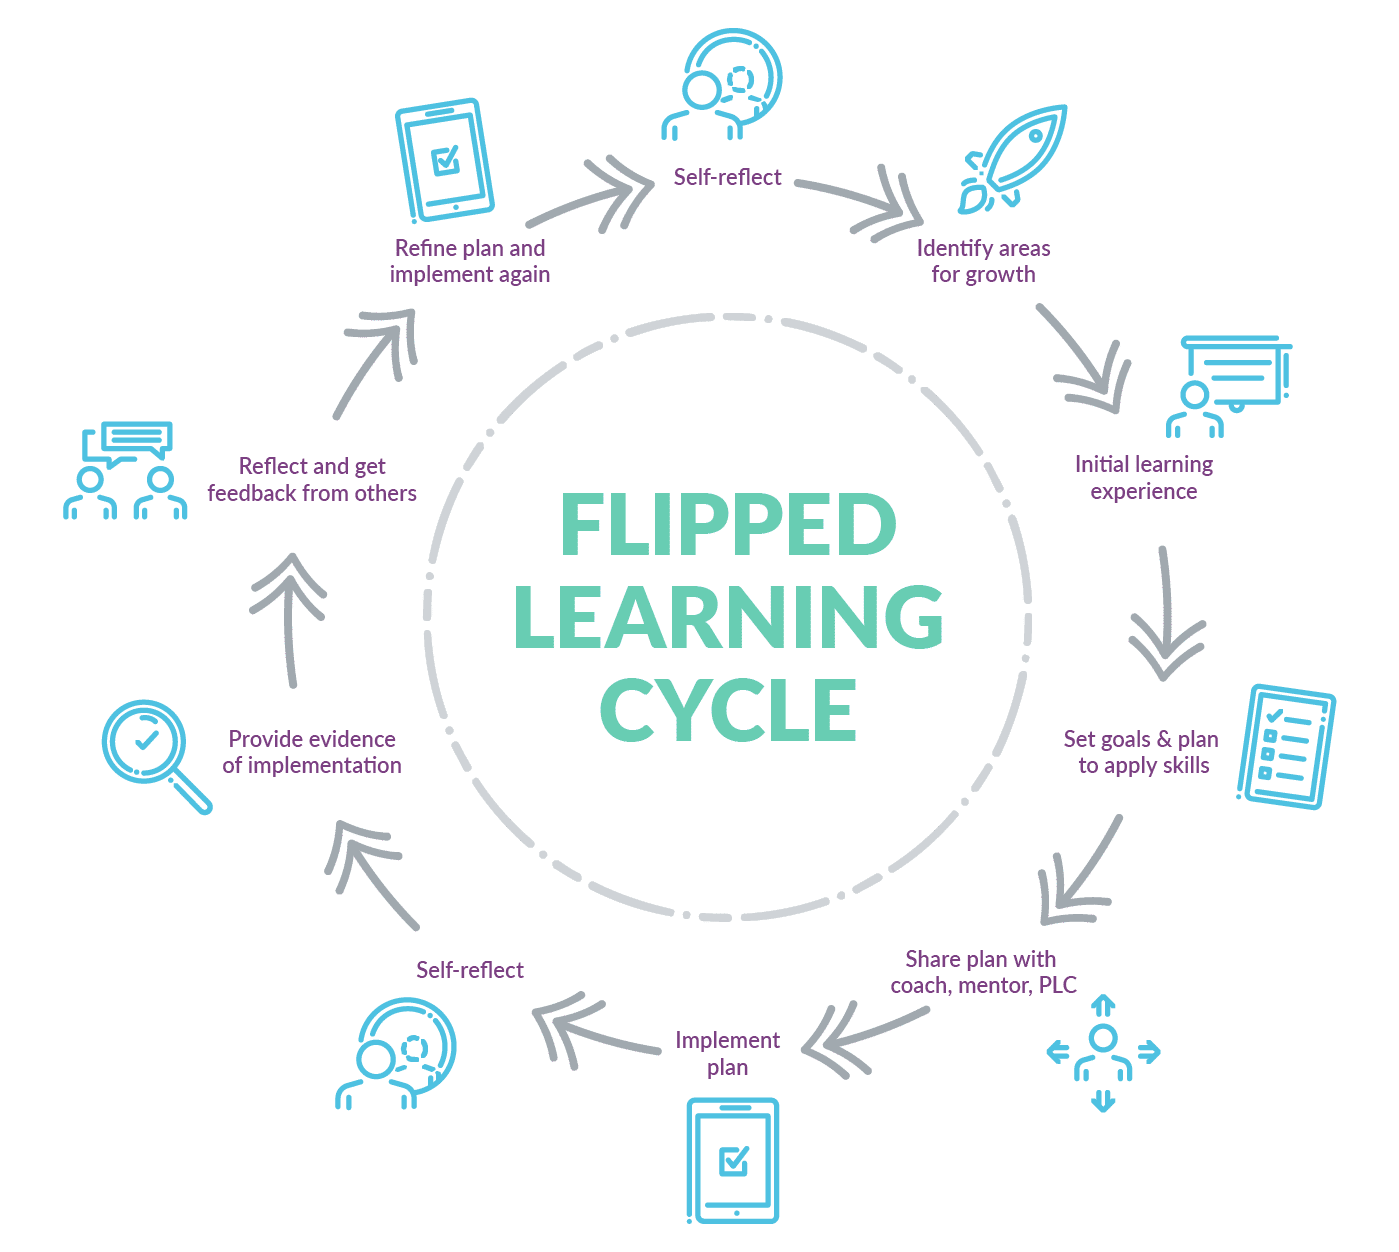 Flipped Learning Cycle